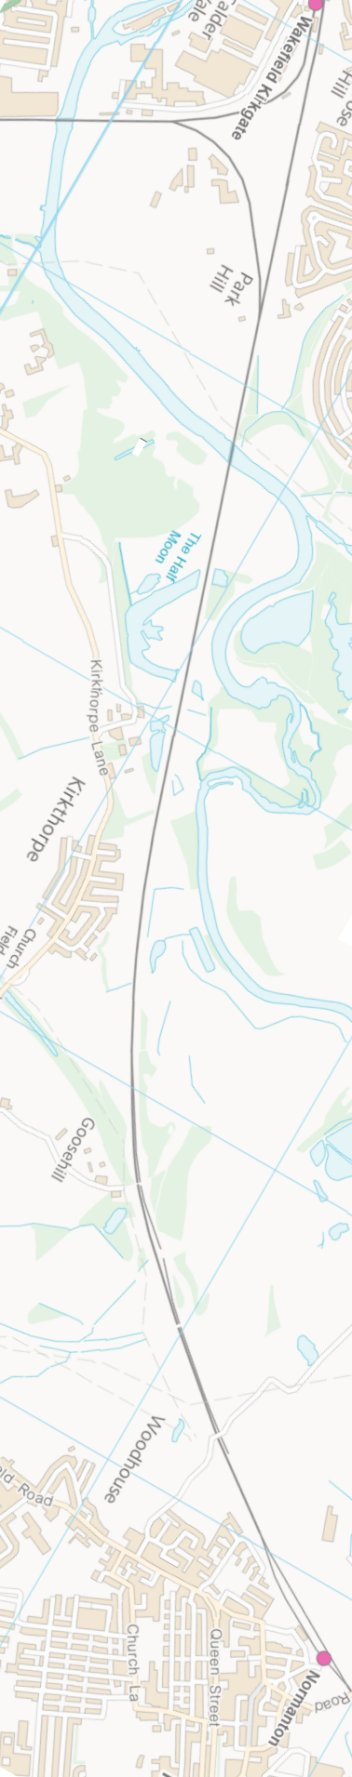 Section from Ordnance Survey OpenSource mapping 2013 showing L&YR railway line from Wakefield Kirkgate to Normanton railway station